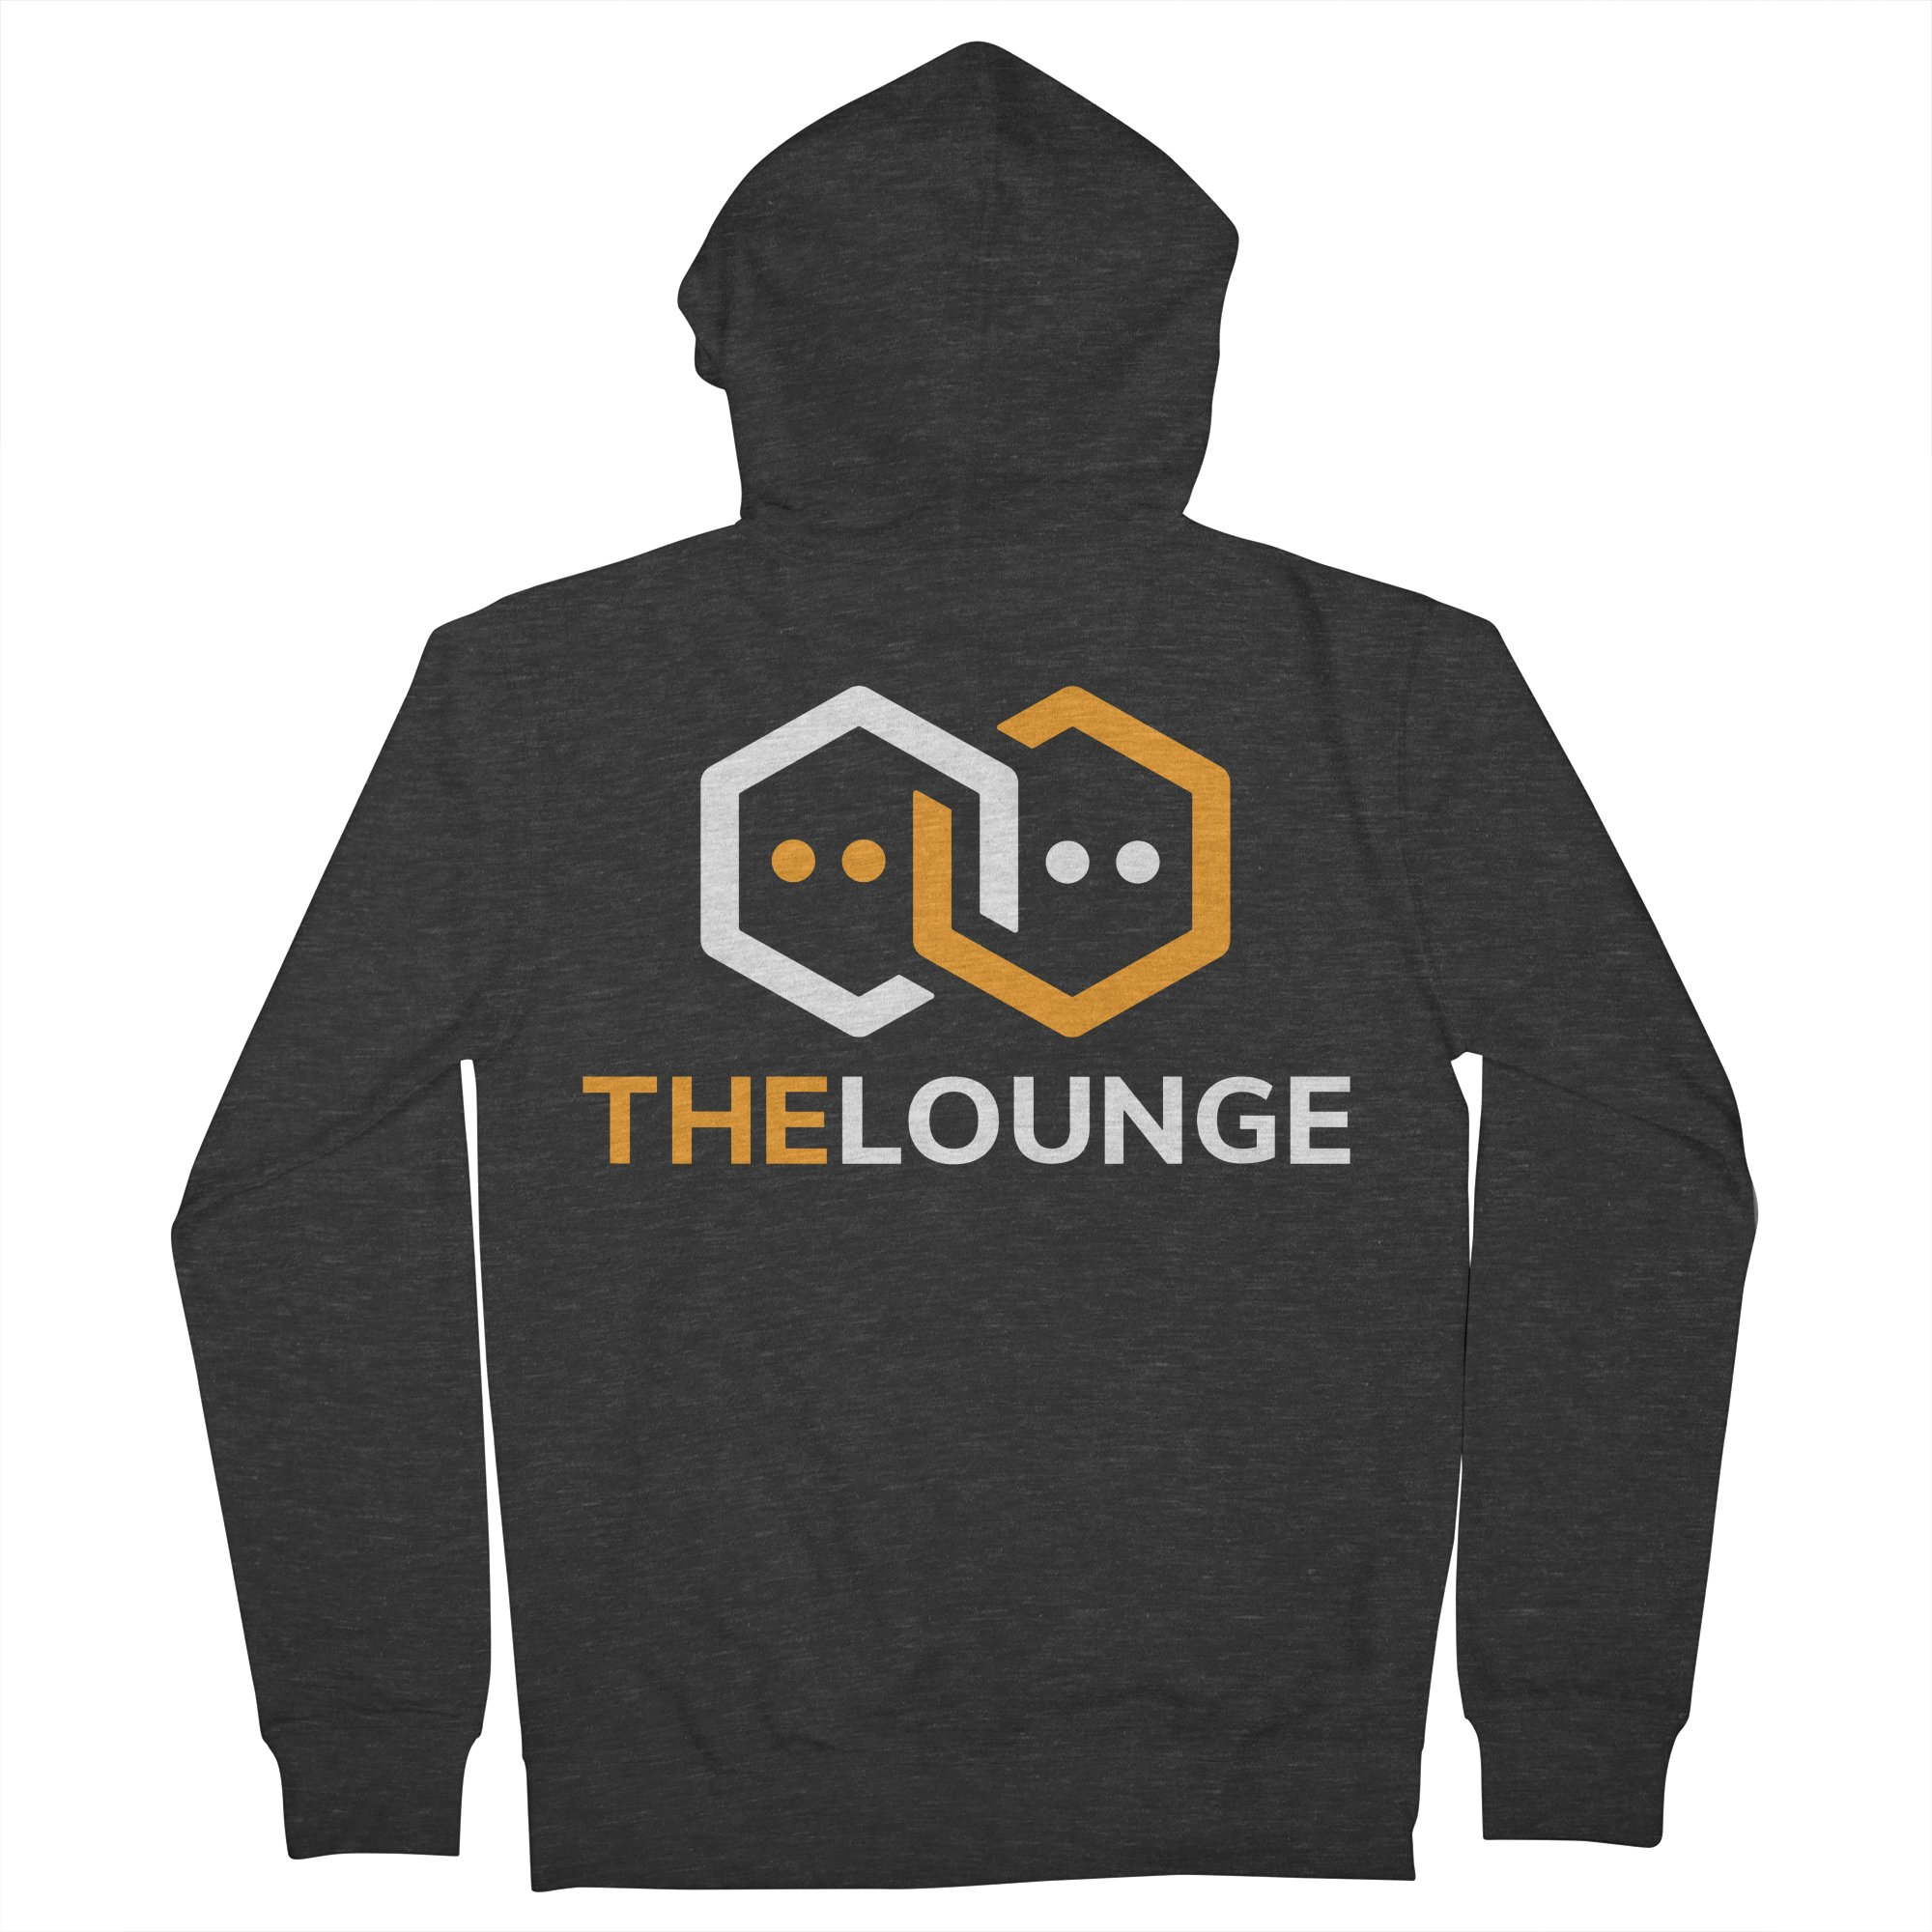 Smoke zip-up hoodie with inverted The Lounge logo